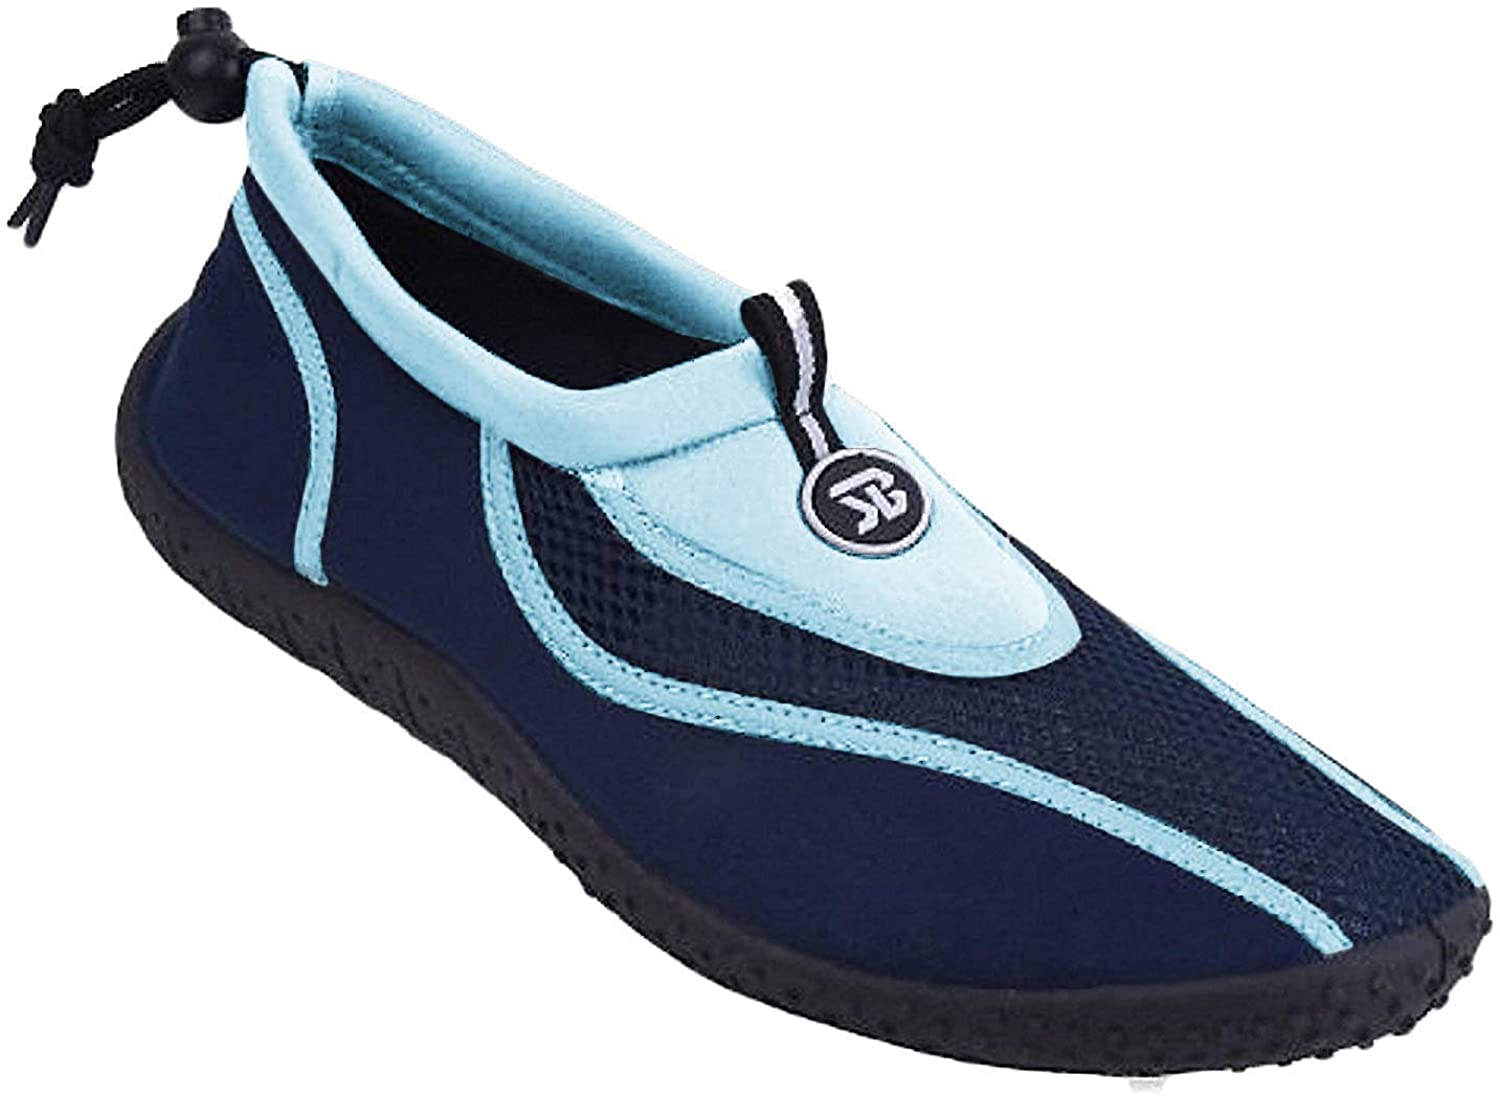 Starbay New Brand Mens Blue & Navy Athletic Water Shoes Aqua Socks Size 10